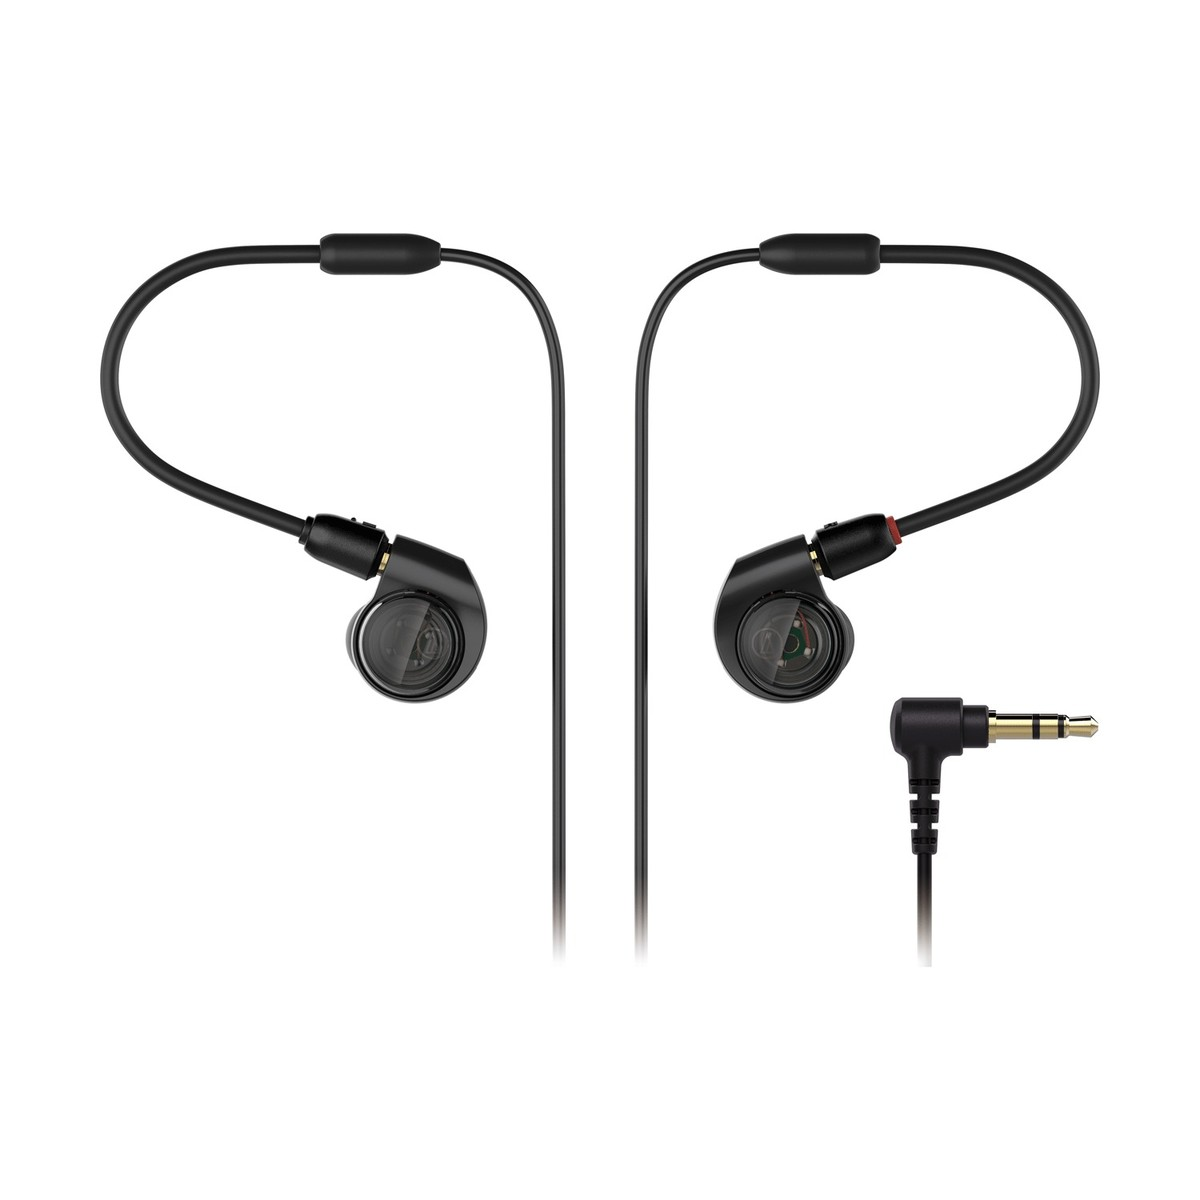 Image of Audio Technica ATH-E40 Professional In-Ear Monitor Earphones